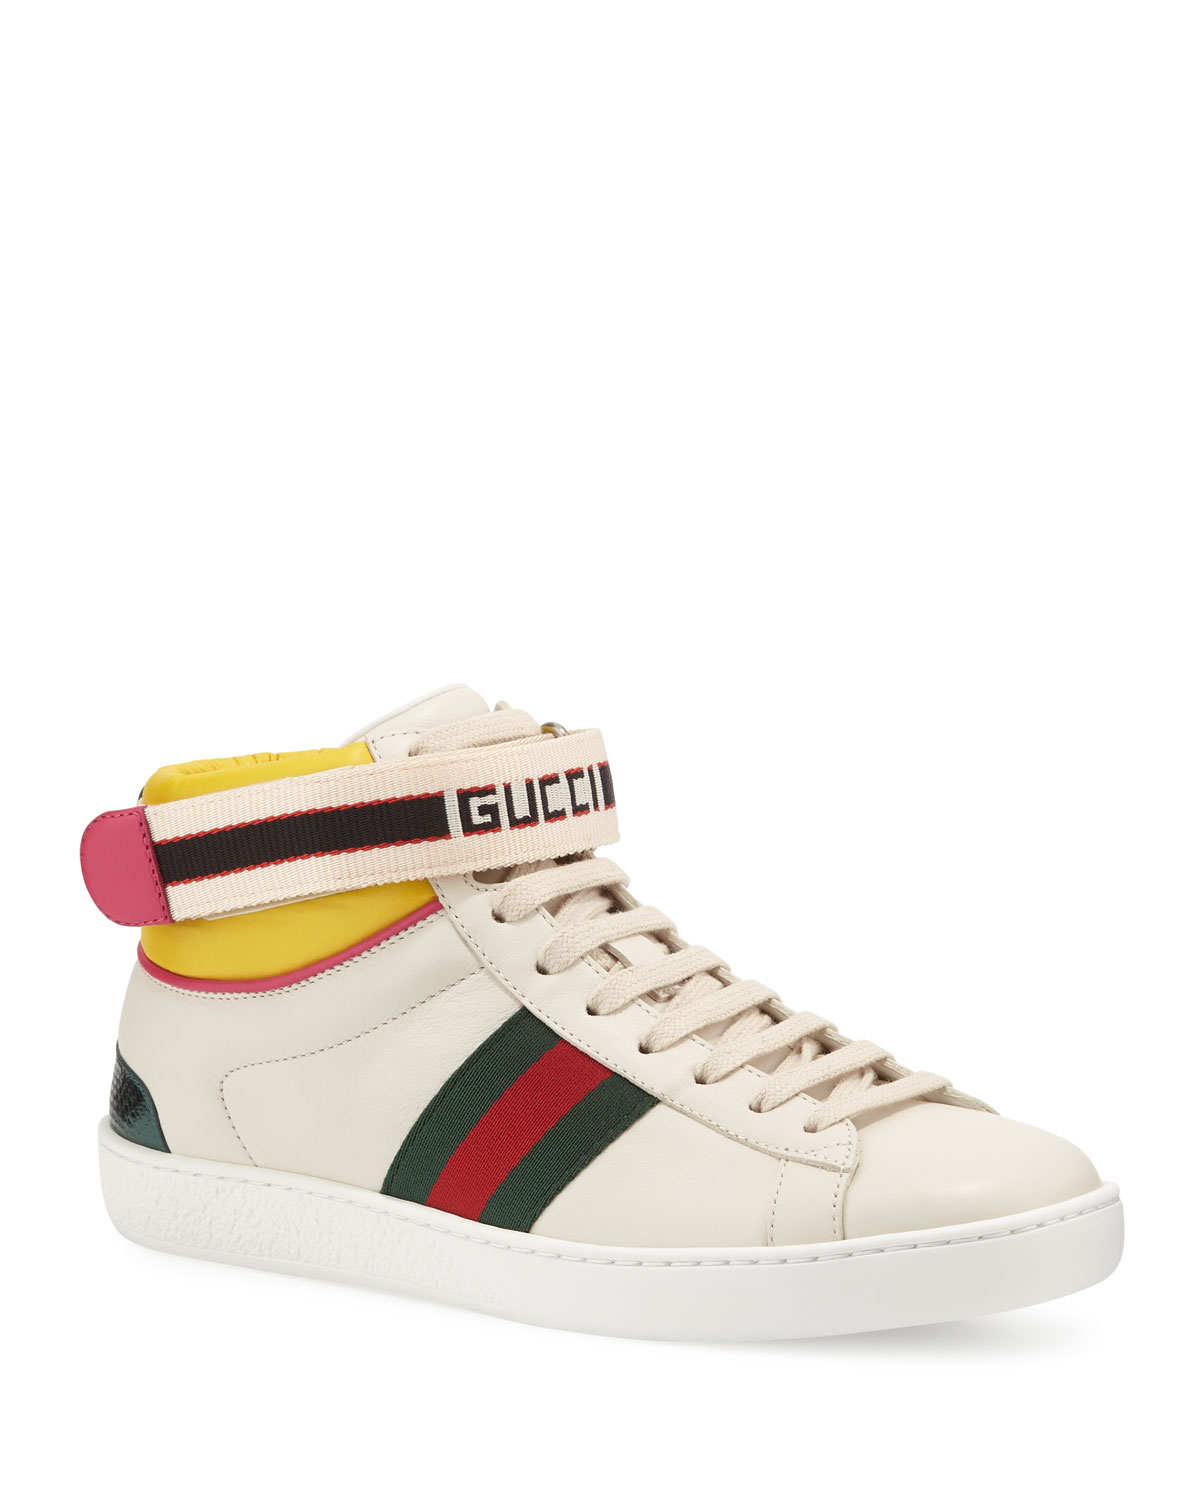 bc361721448a Gucci New Ace High Leather Sneaker With Strap